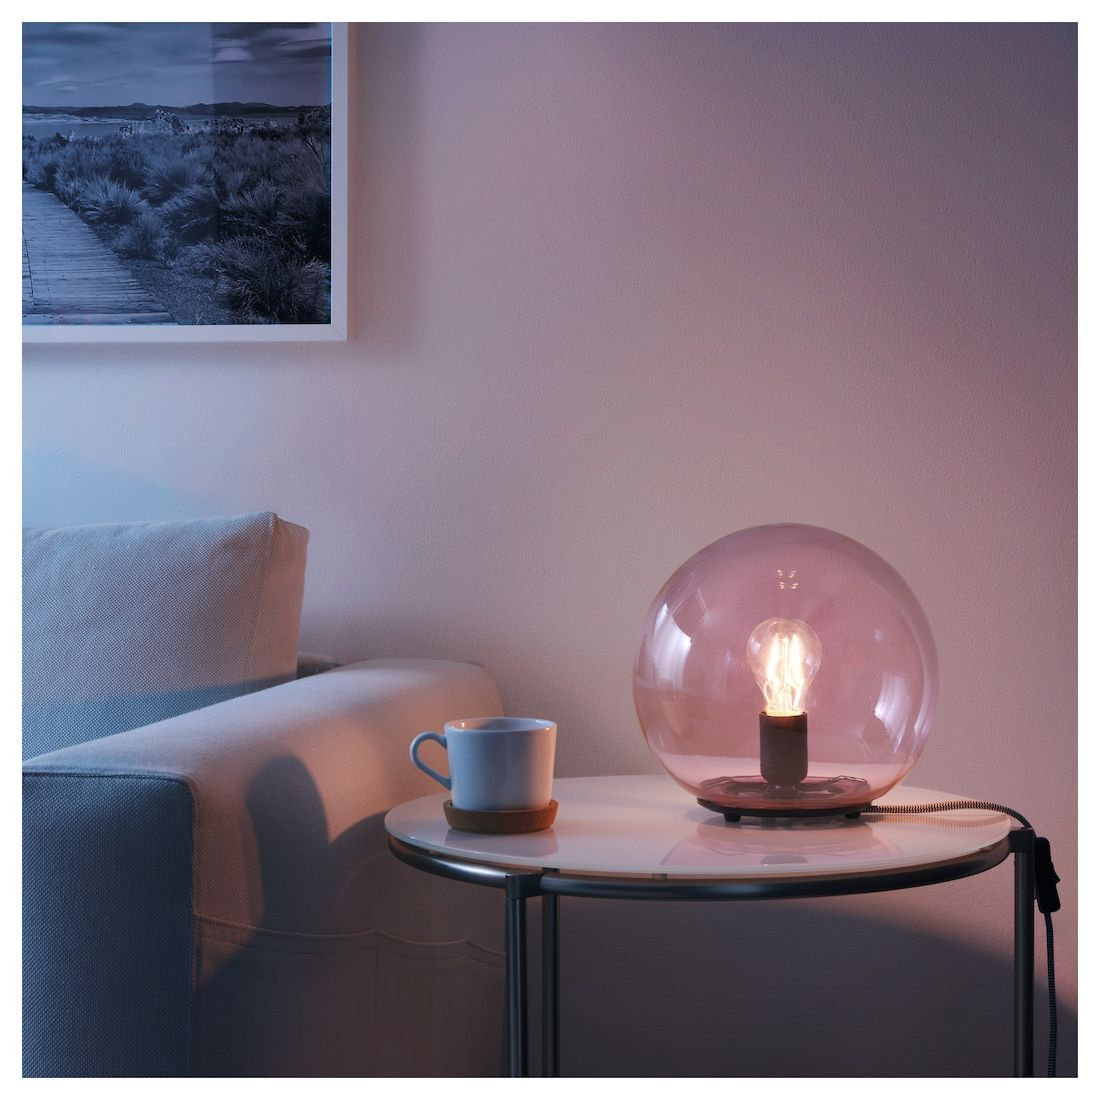 IKEA US Furniture and Home Furnishings | Lamps living room